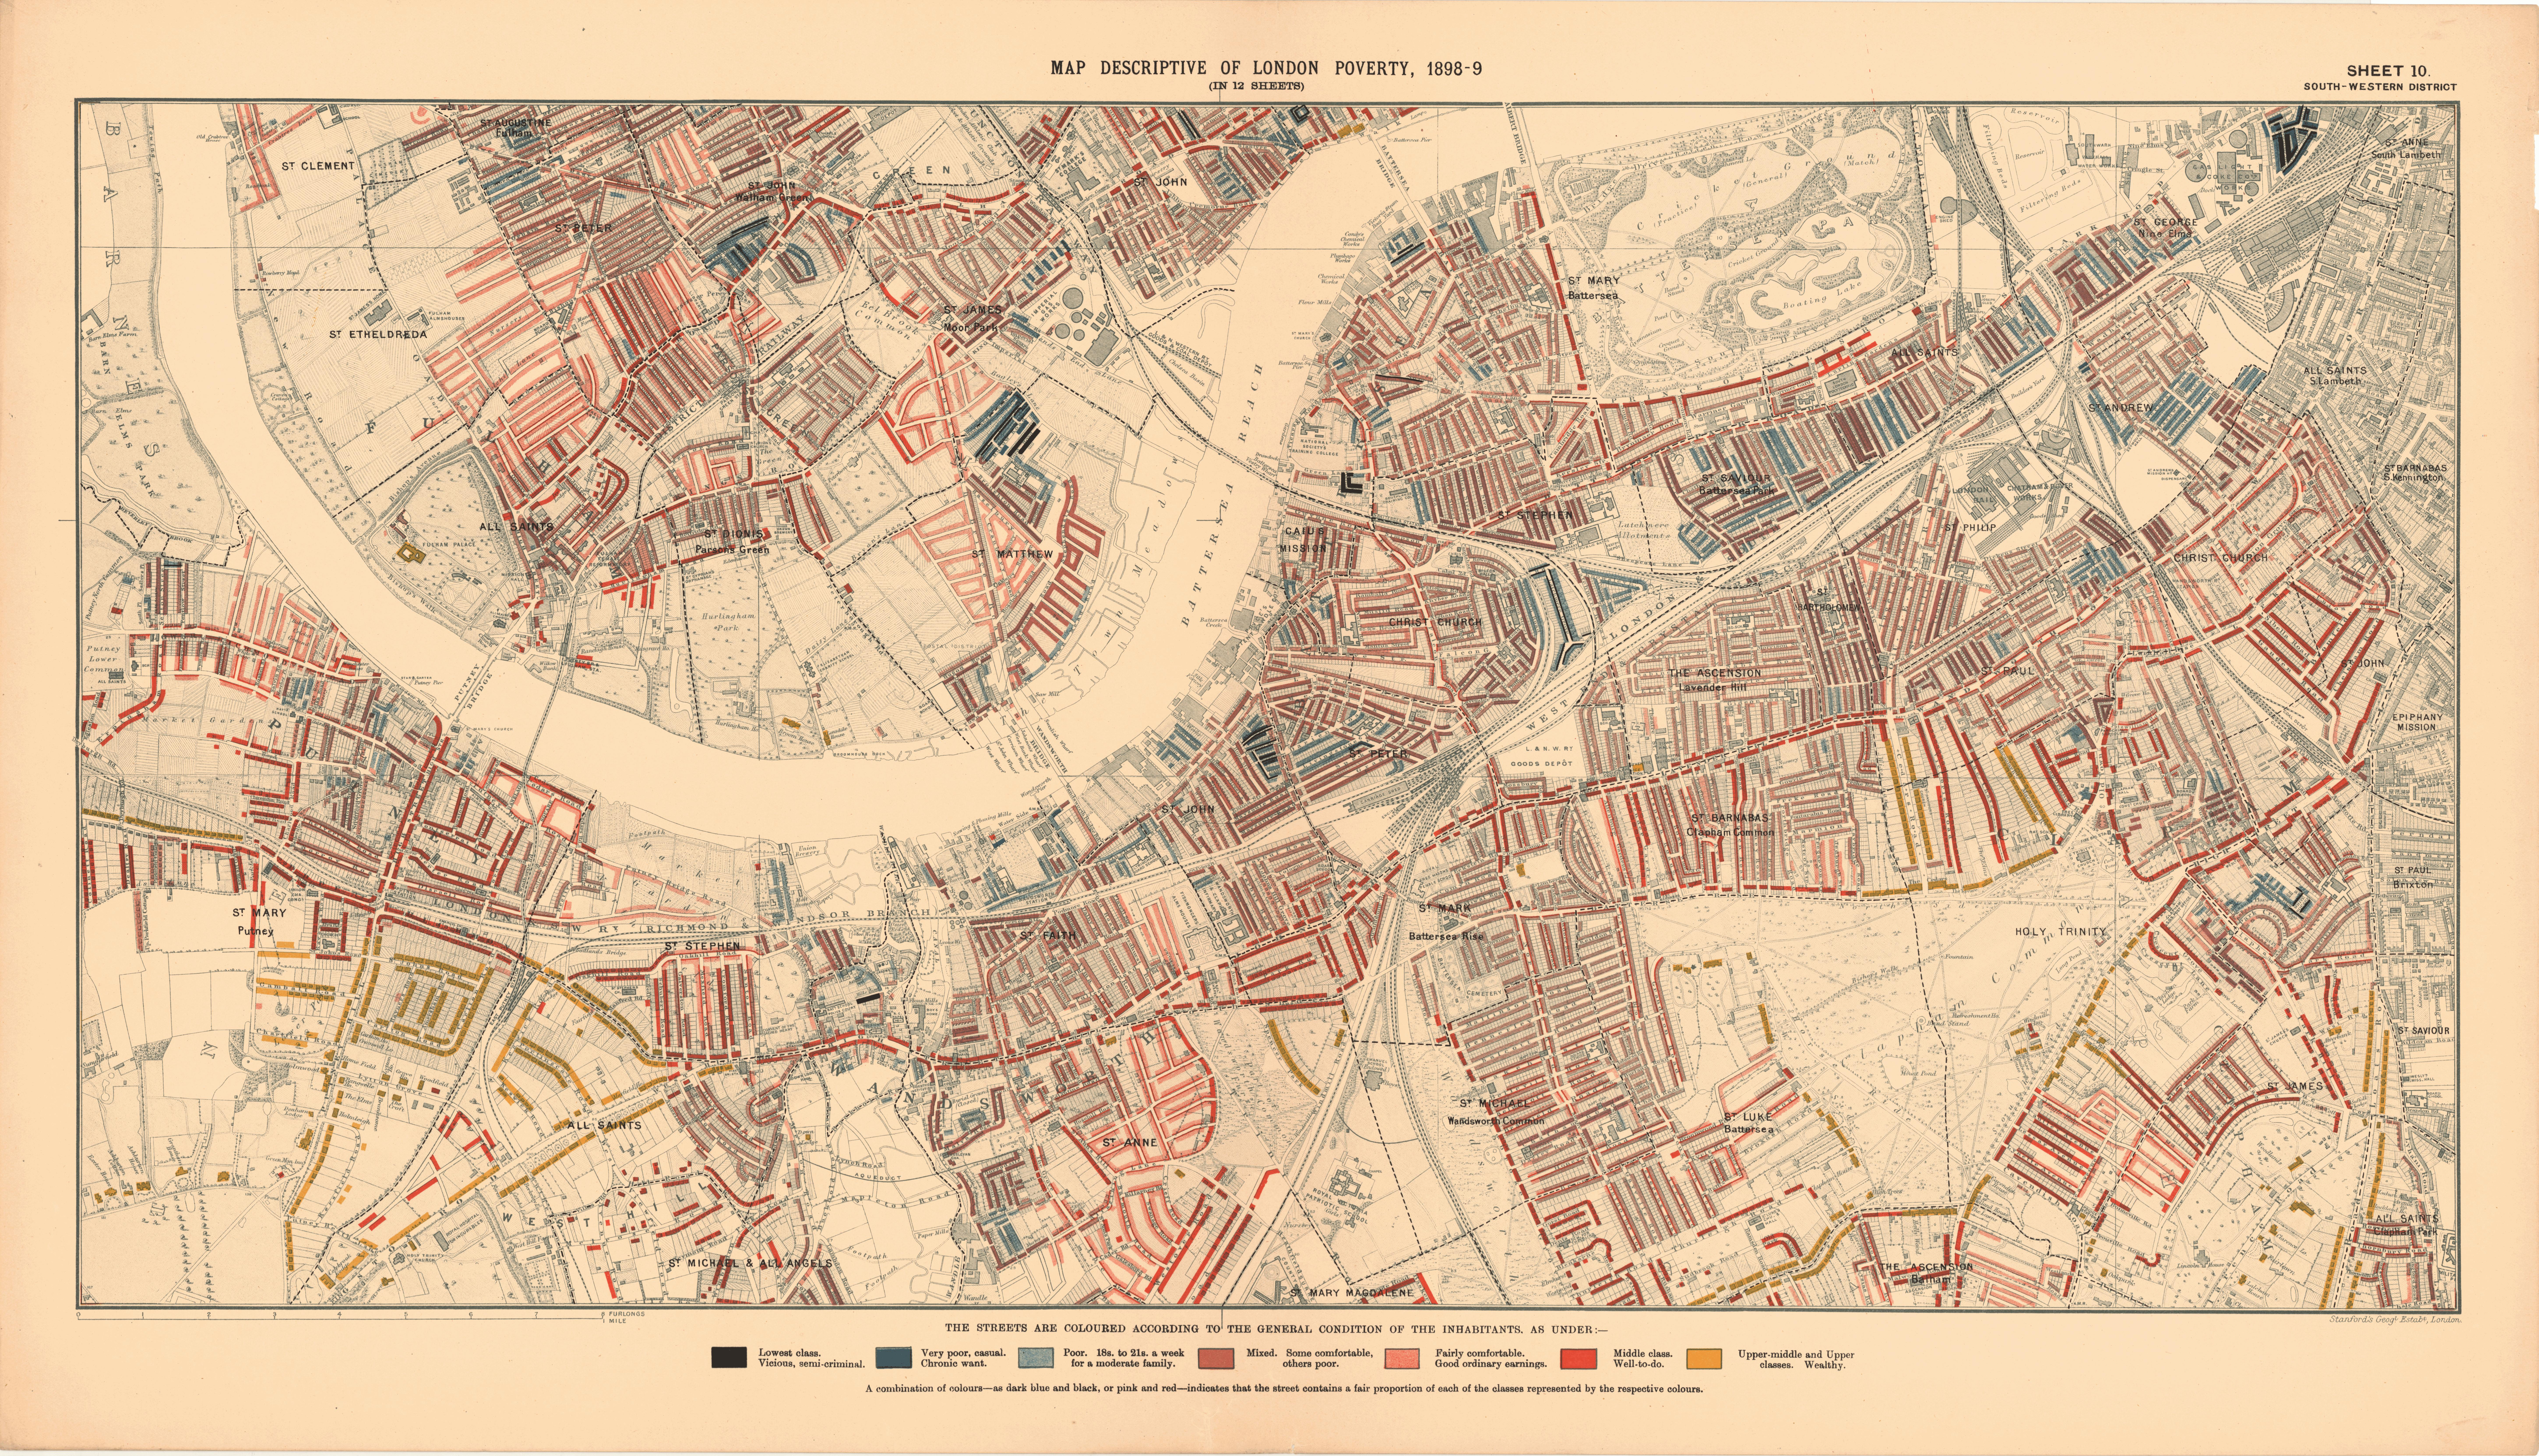 South West London Map.File Printed Map Descriptive Of London Poverty 1898 1899 Sheet 10